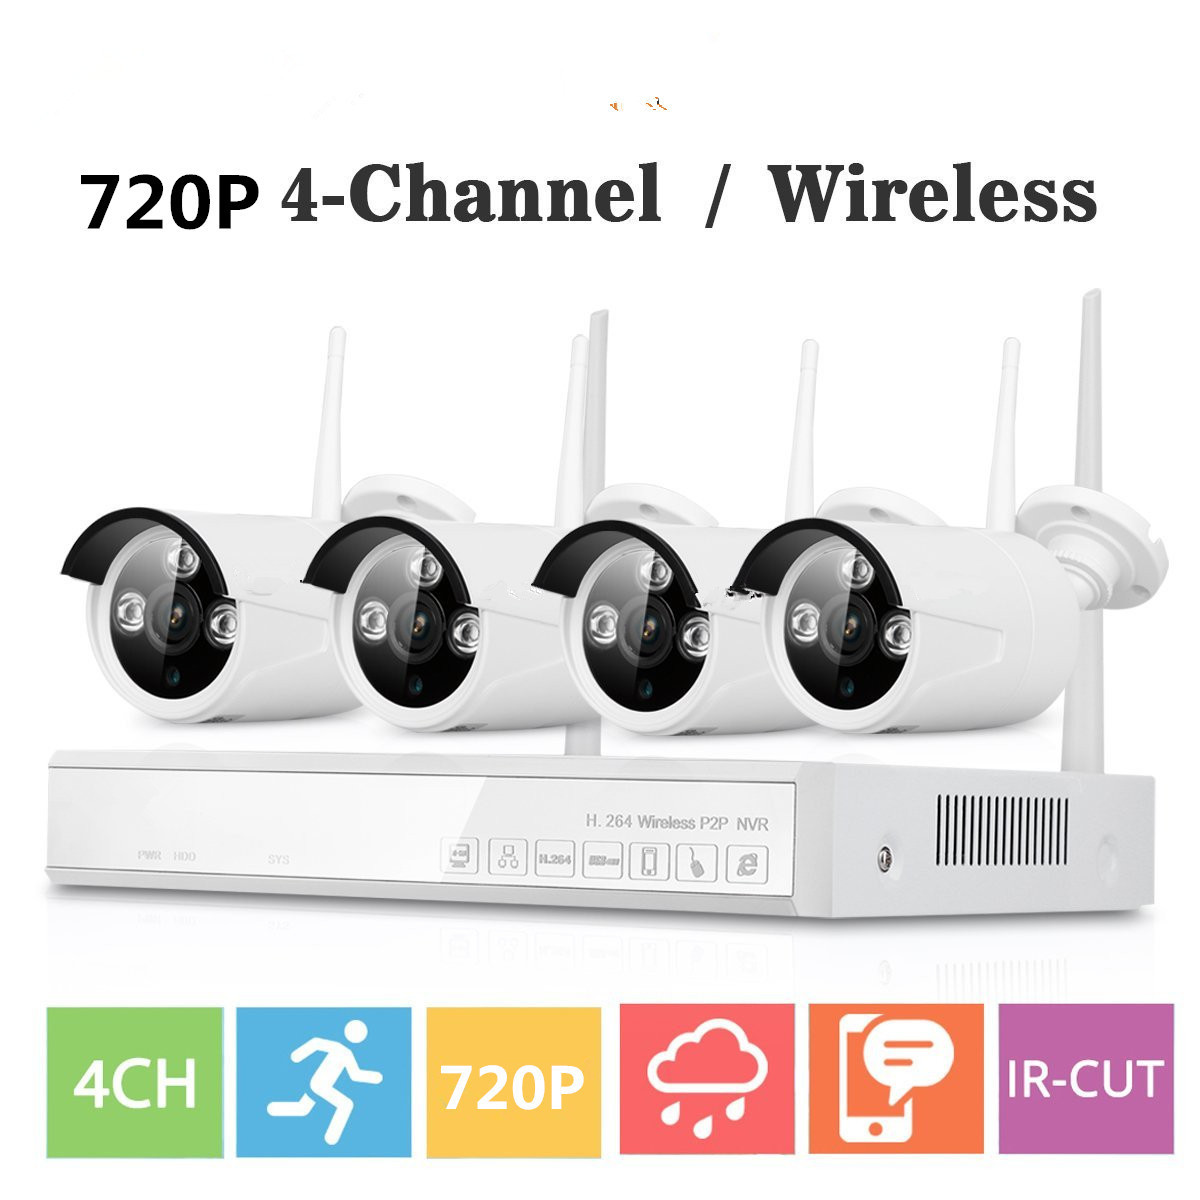 4CH Wireless NVR CCTV System wifi 1.0MP IR Outdoor Bullet P2P IP Camera Waterproof Security Video Surveillance wifi Kit 5 8g 1 0 mp 1 4 color cmos 4ch 720p wifi 1 nvr with 4 pcs waterproof ir bullet wireless ip camera wireless cctv system kit